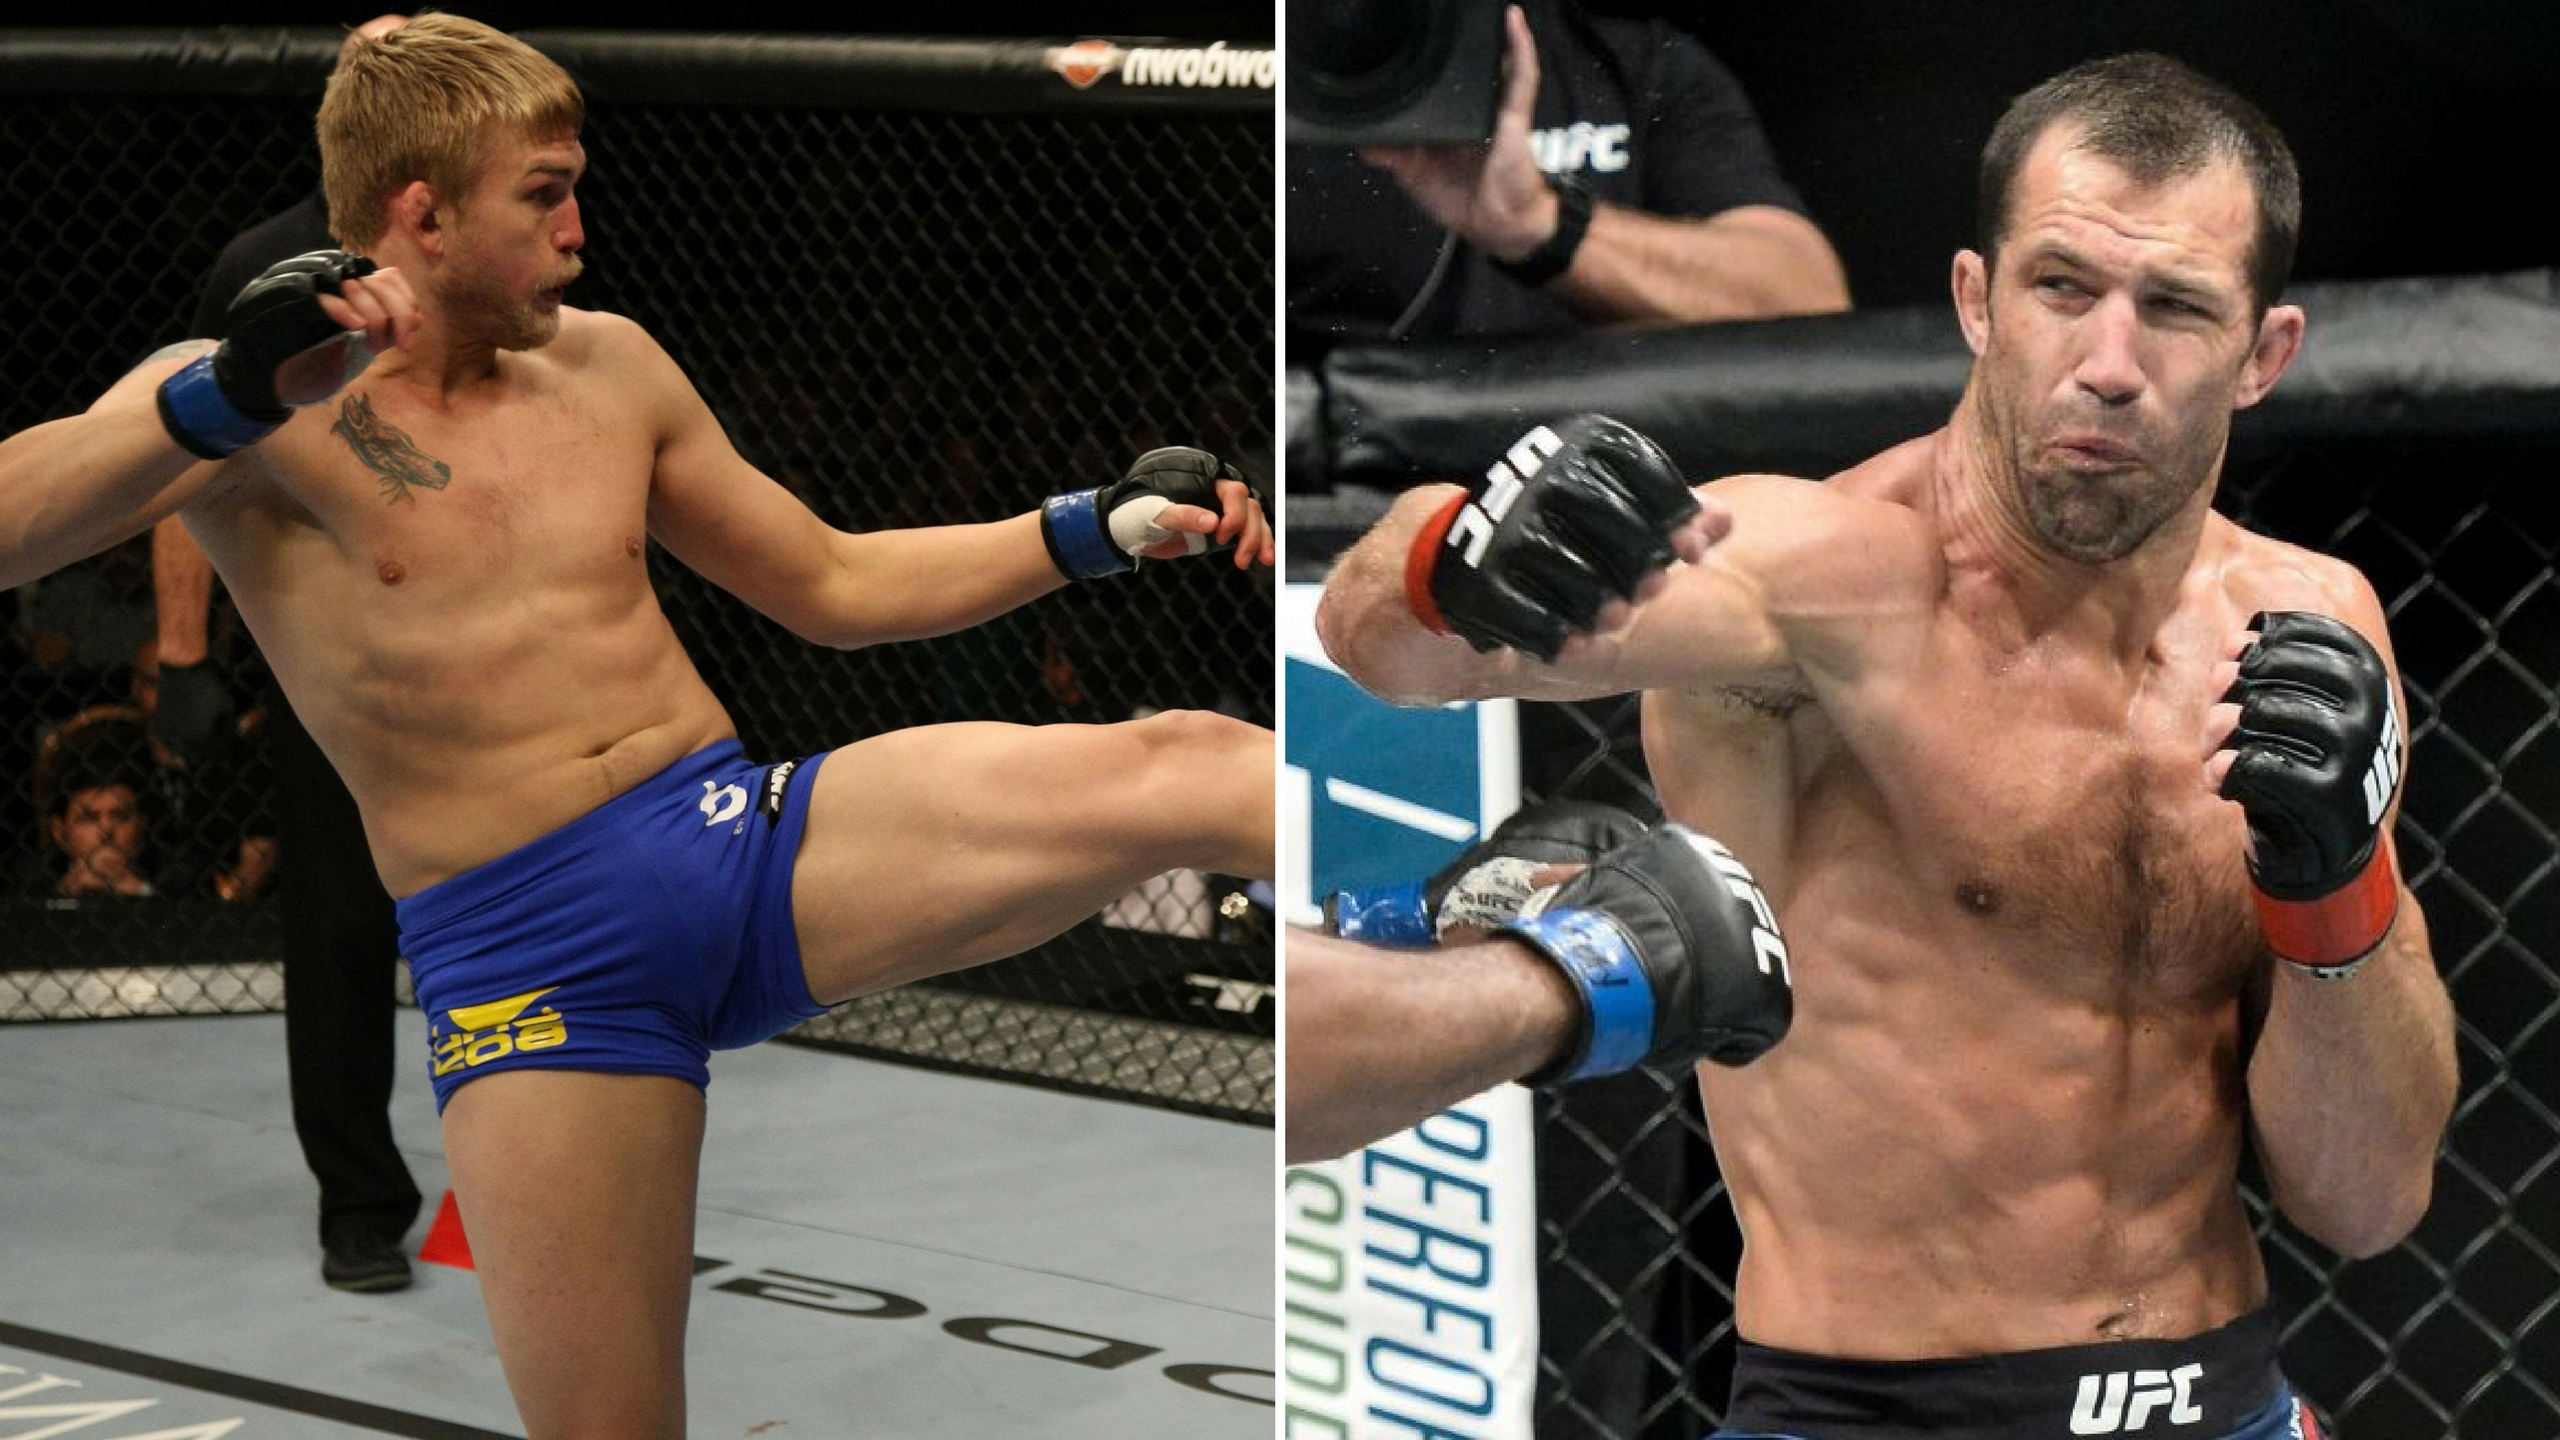 Alexander Gustafsson ready to welcome Luke Rockhold to LW - alexander gustafsson